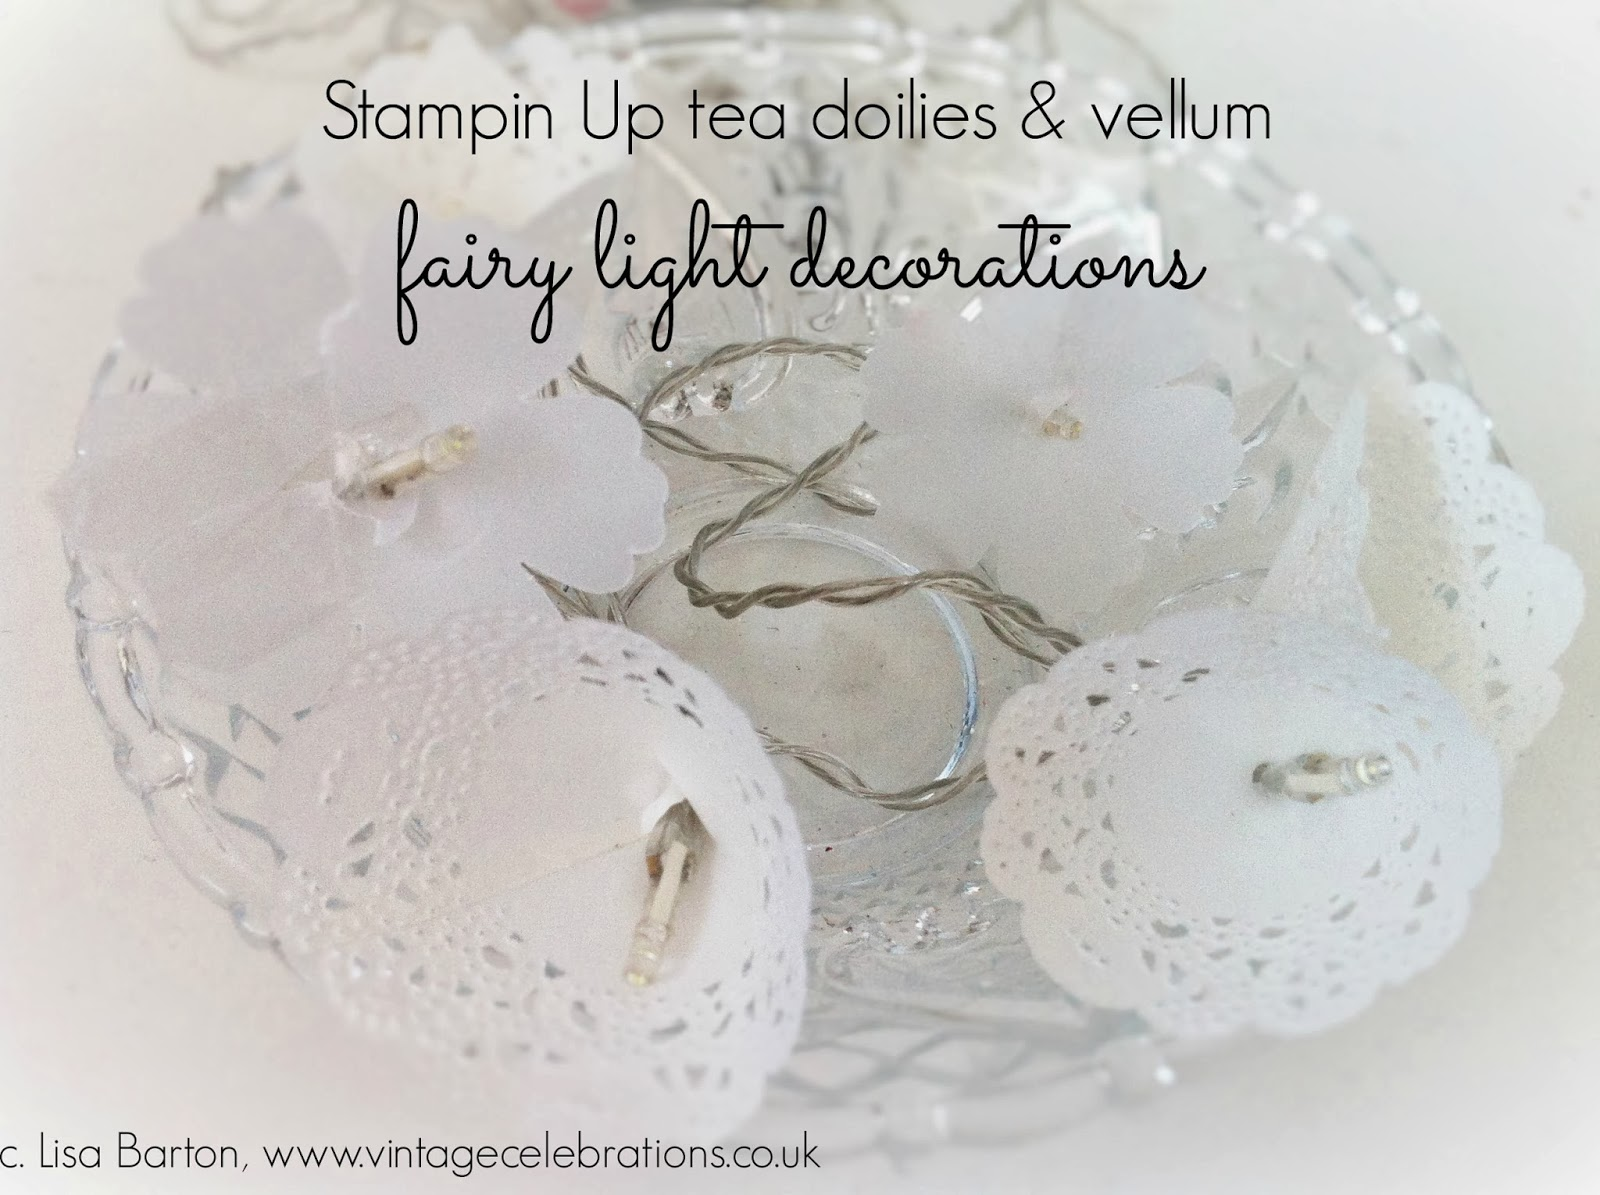 Tips techniques on how to sell your handmade crafts easily simply take a doily or punched vellum shape we used the stampin up blossom punch for ours make a small hole at the bottom and thread your fairy light mightylinksfo